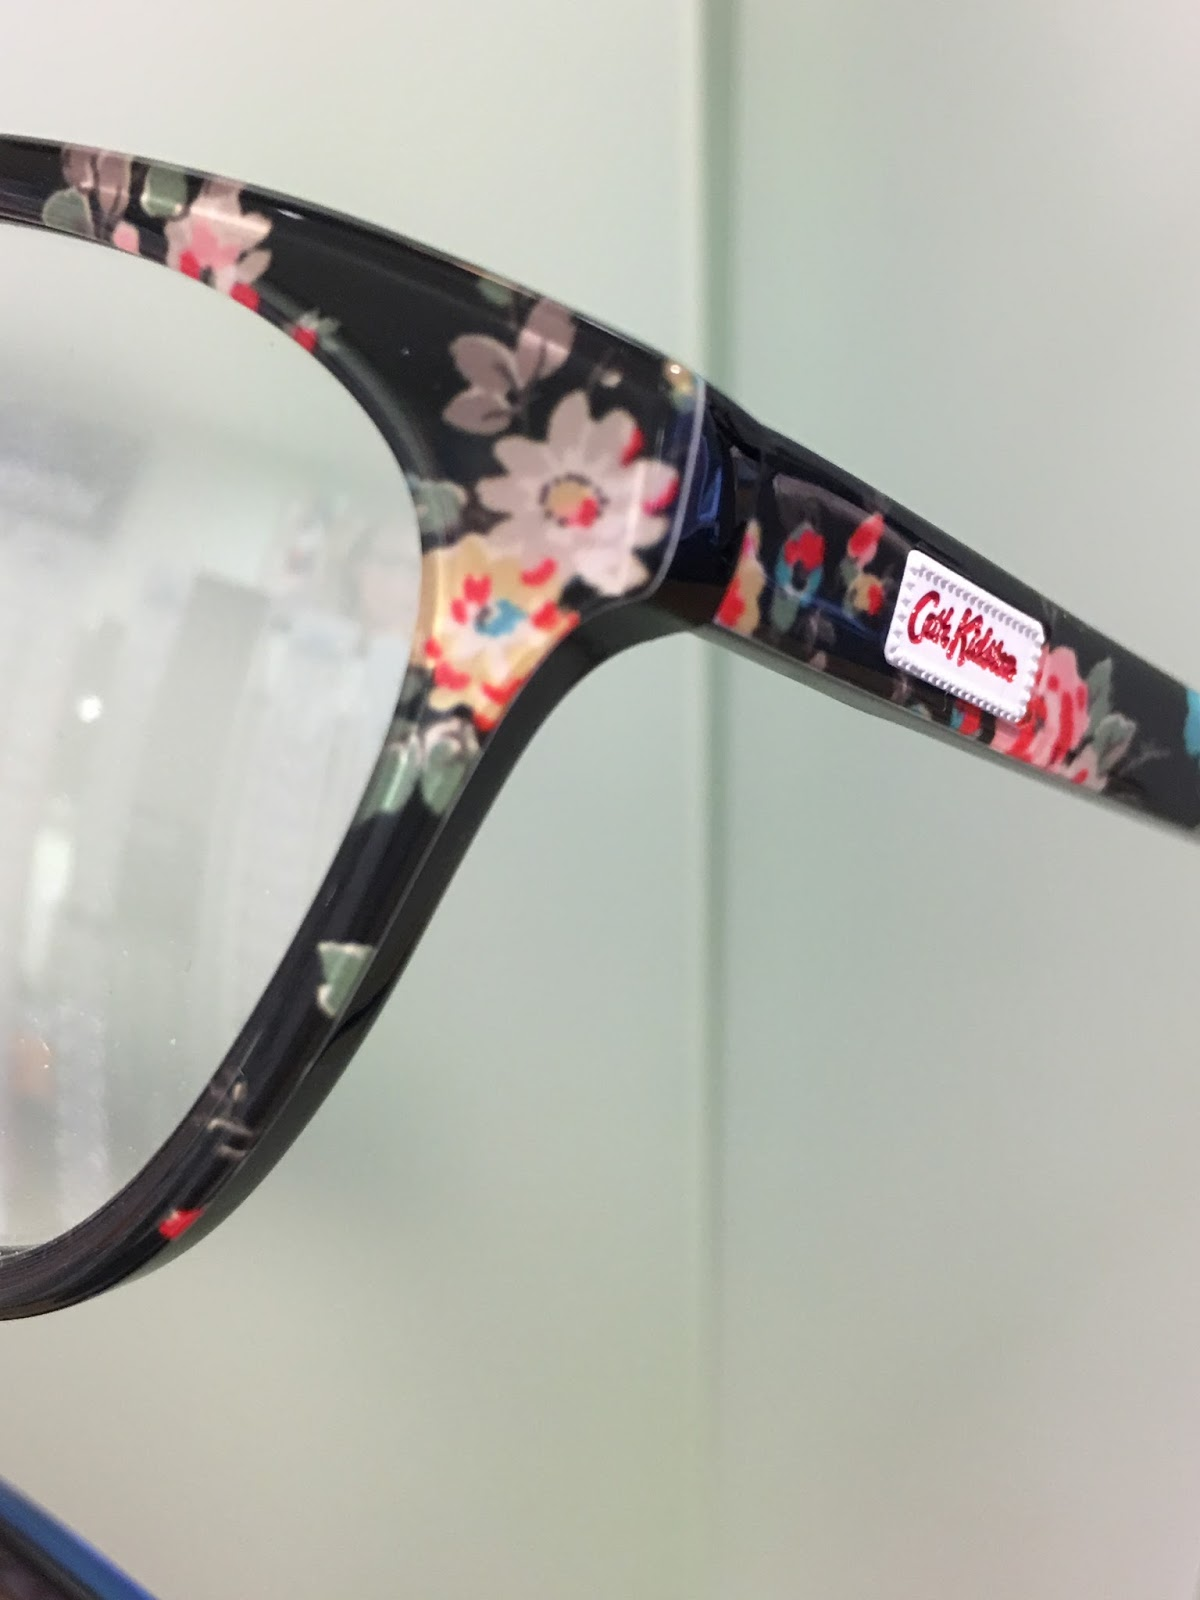 cath kidston frames from specsavers review. Black Bedroom Furniture Sets. Home Design Ideas